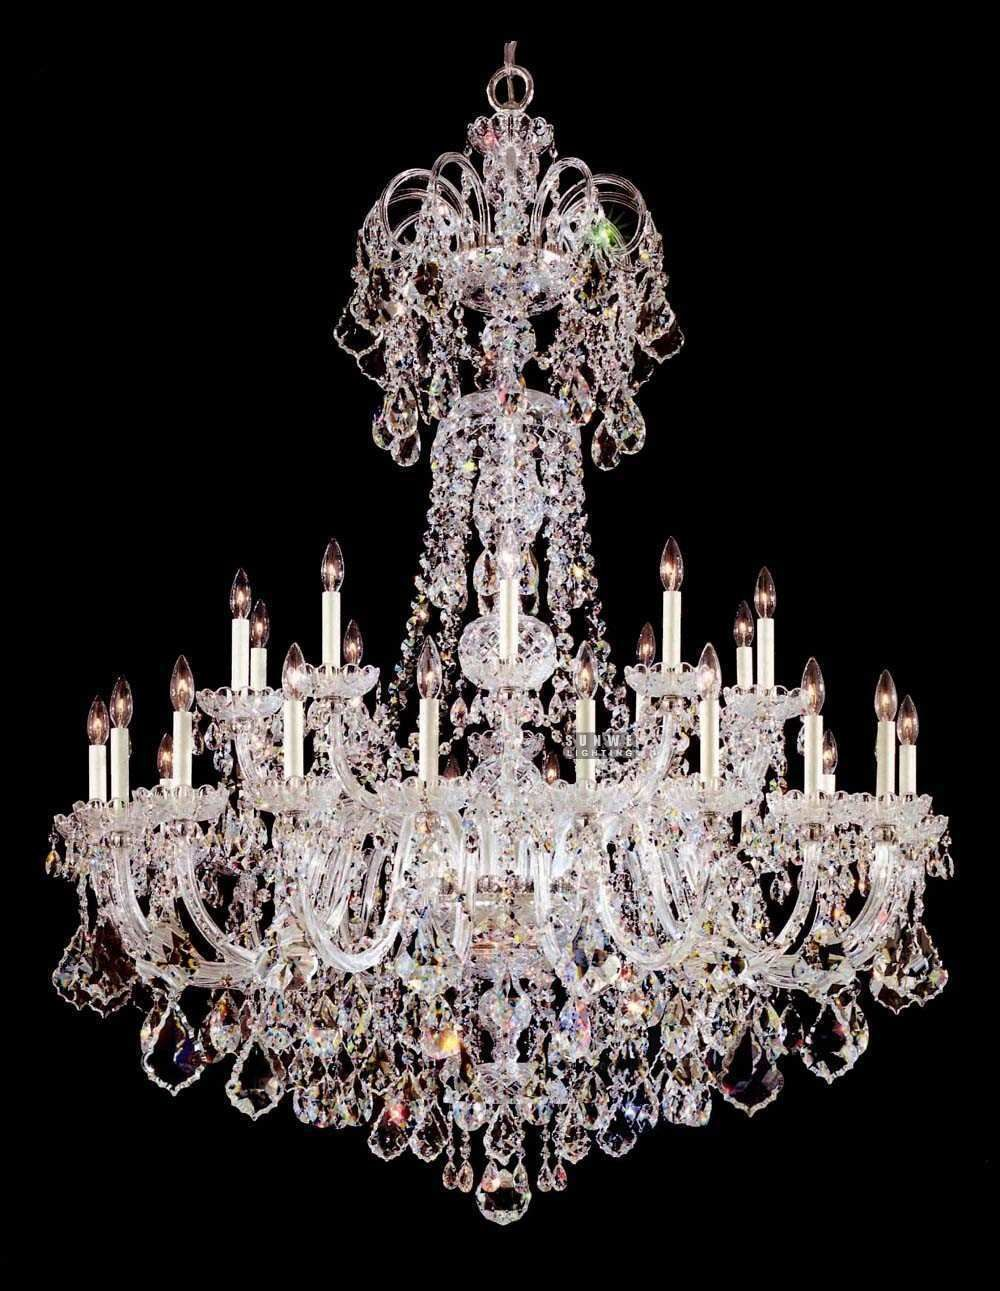 Aliexpress buy free shipping chandelier sales hall 30 lights aliexpress buy free shipping chandelier sales hall 30 lights bohemian crystal chandelier with aloadofball Images